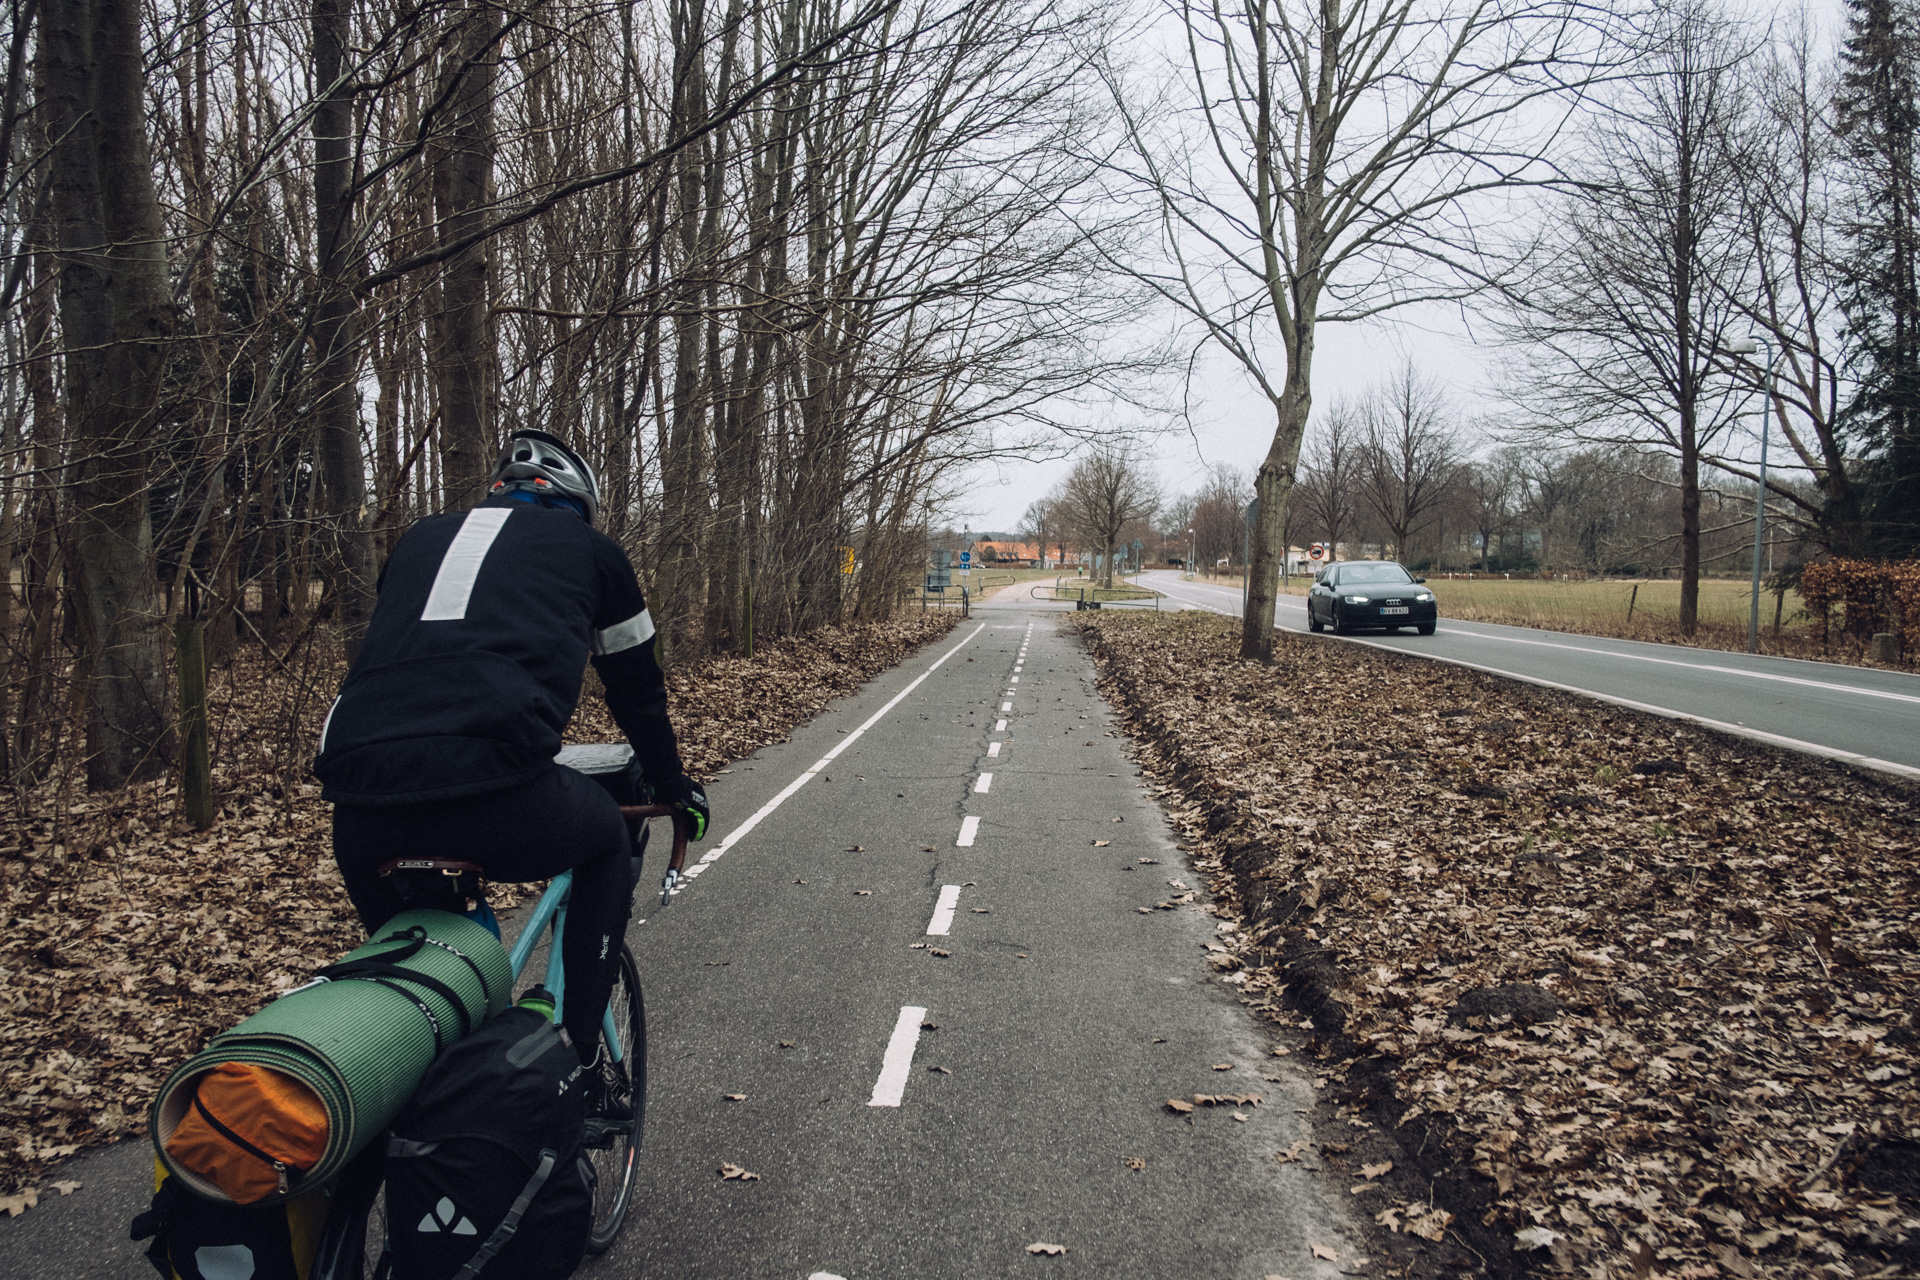 We're following several bike-paths on our way north, here going north from Copenhagen along the Strandvejen, a street famous for its architecture.